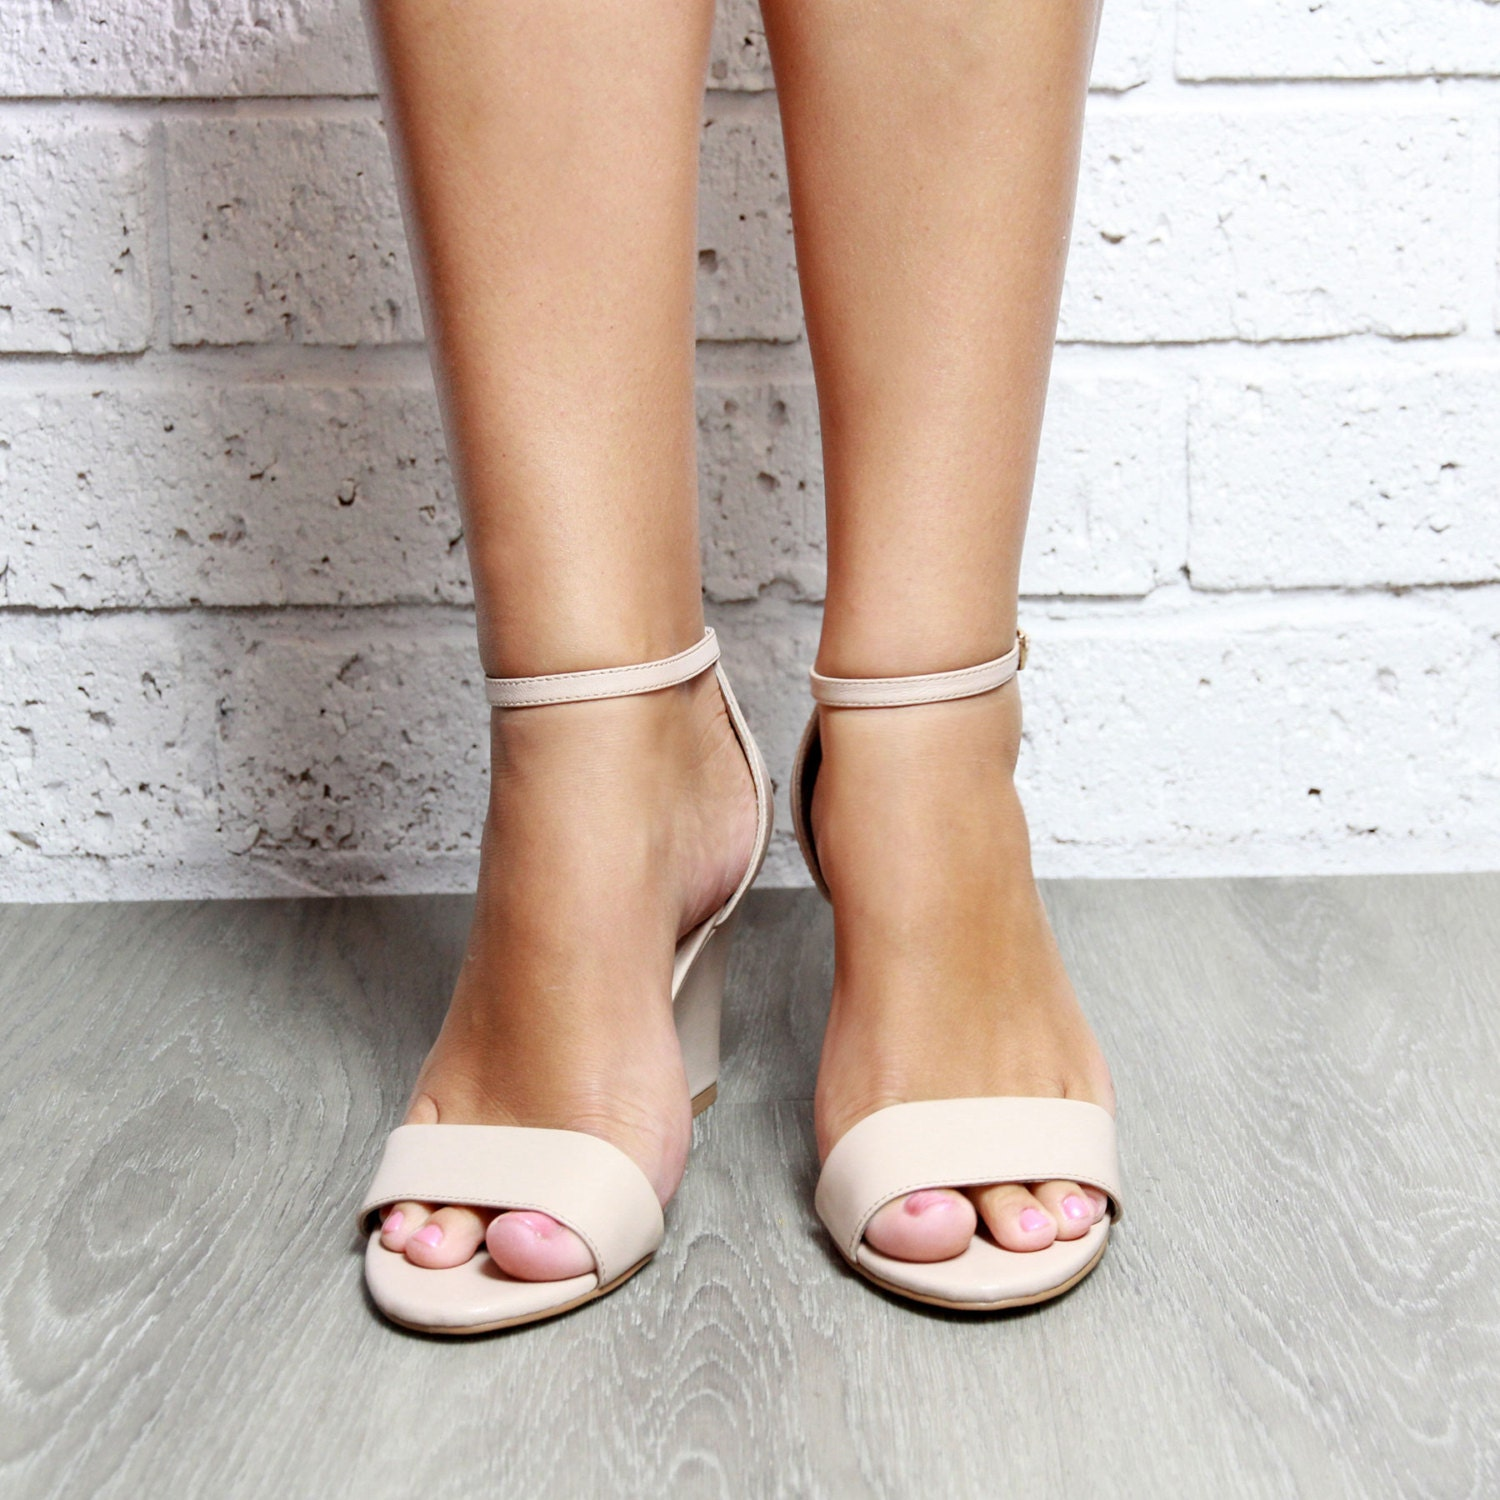 Wedding Wedge Heels: Ladies Nude Wedges Nude Bridal Shoe Wedding Wedge Bridal